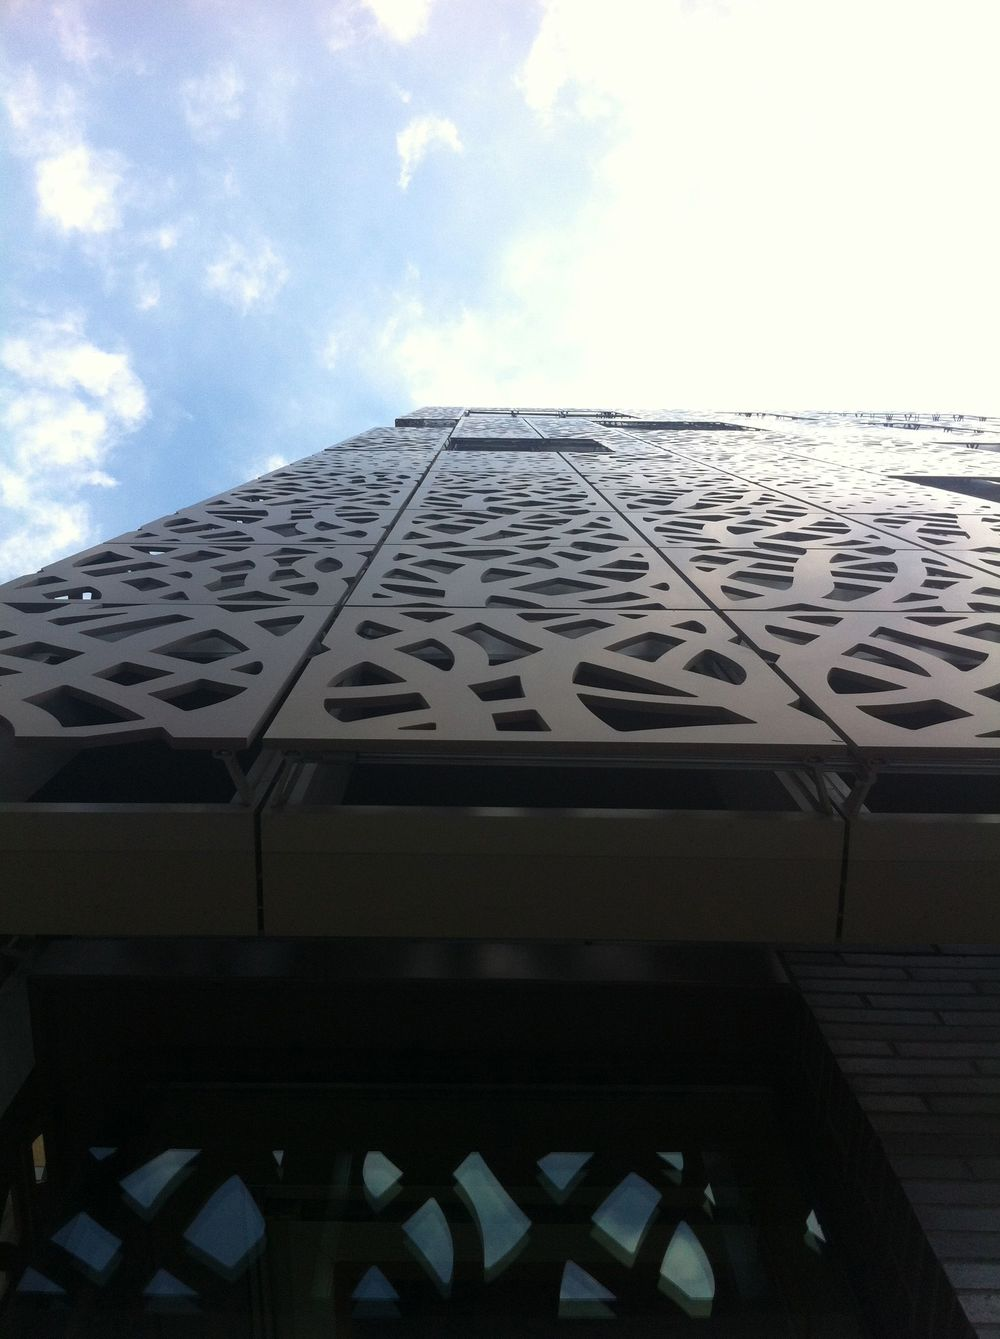 A beautiful building at NYU